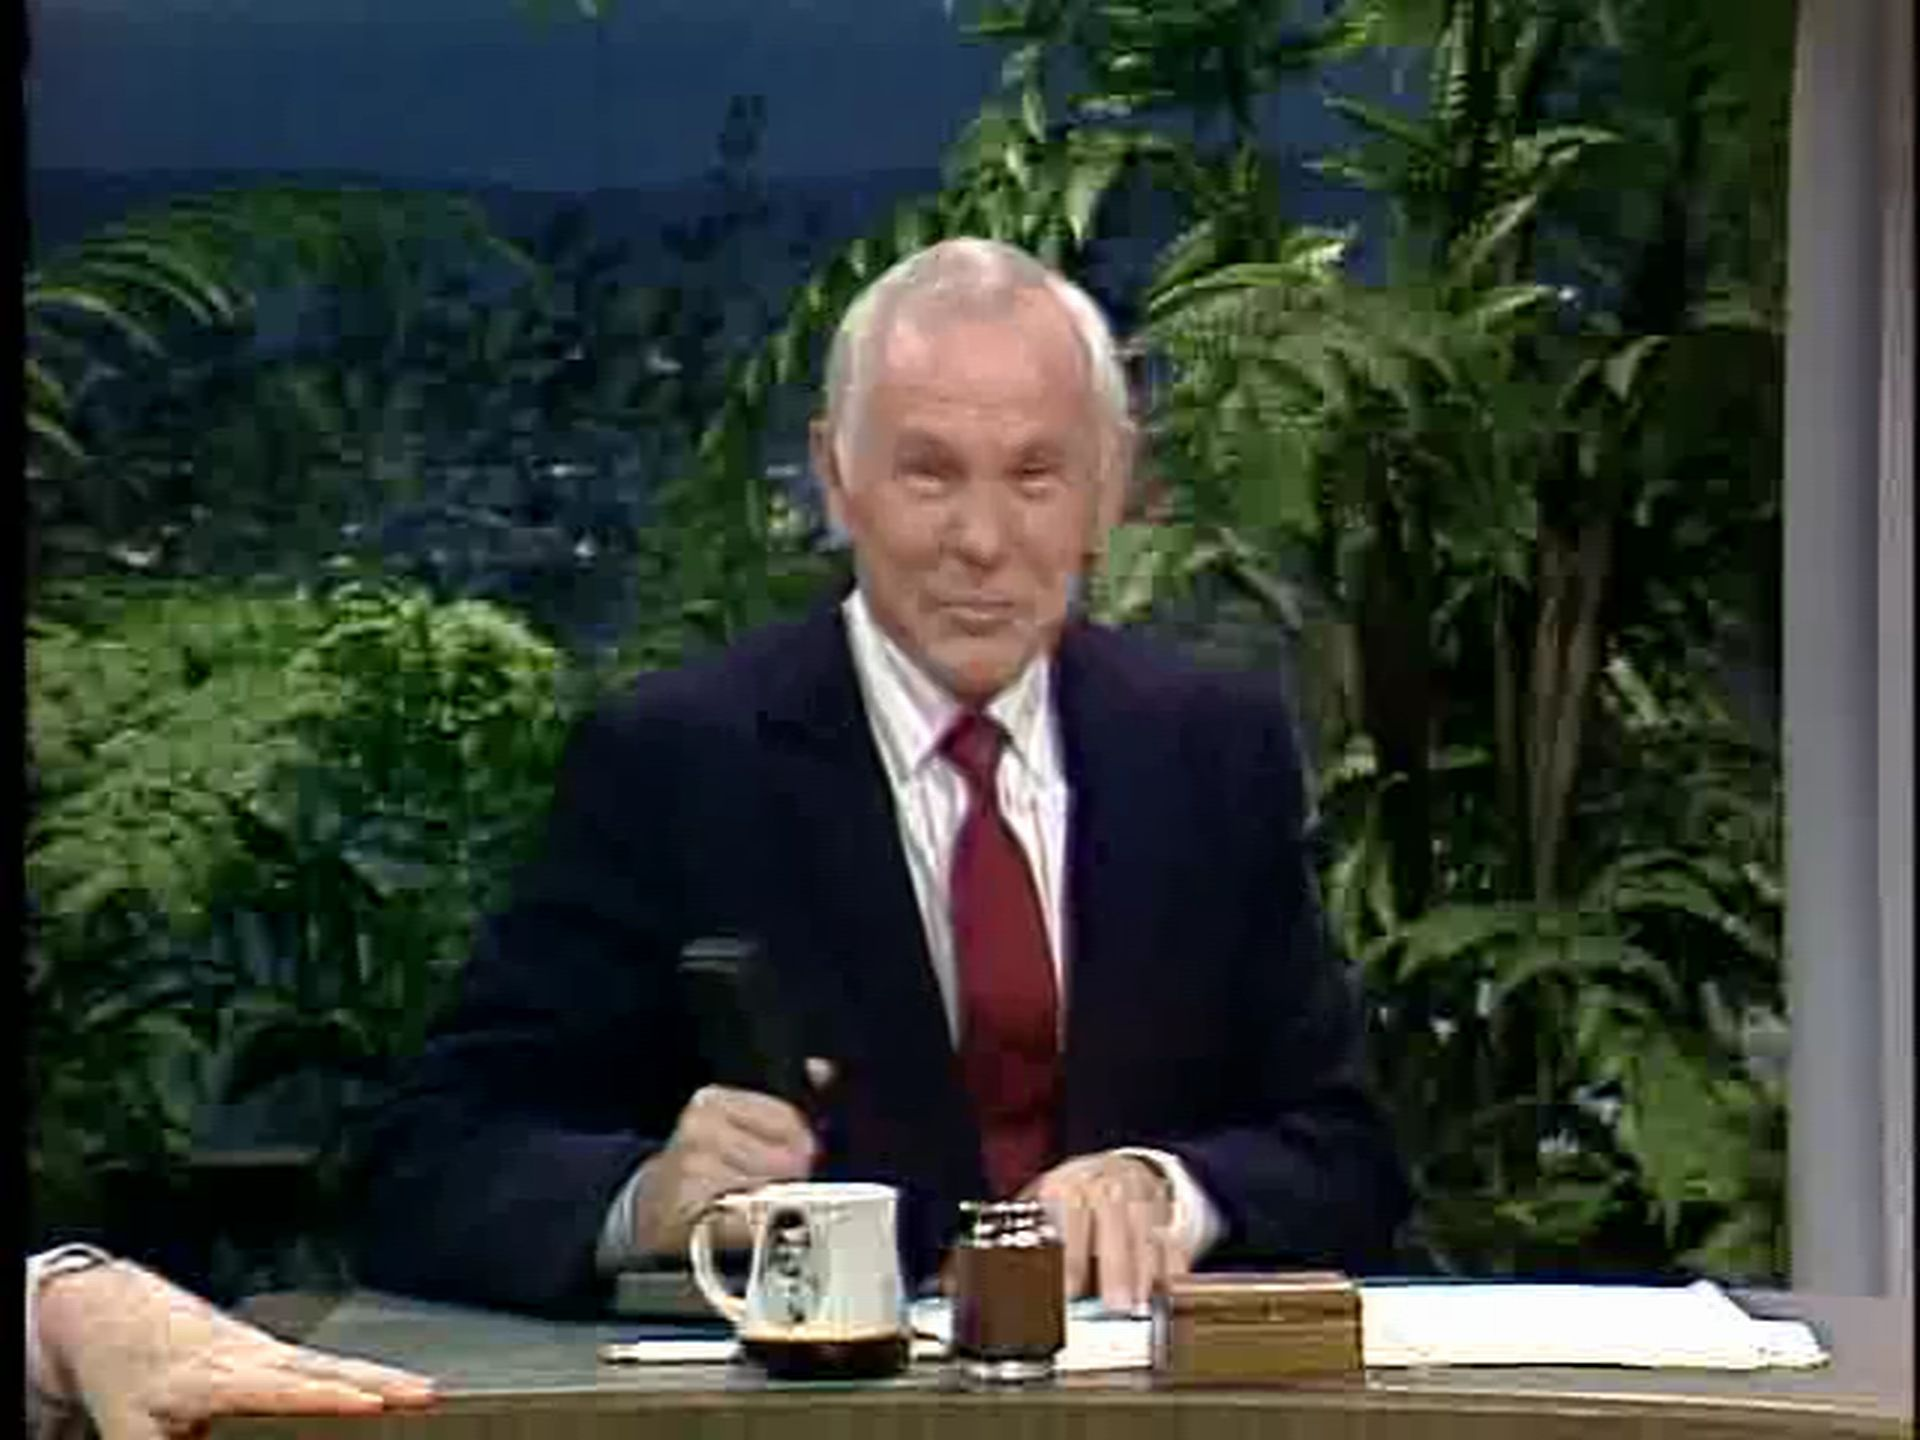 Seats From Johnny Carson's Final 'Tonight Show' - One News ... |Johnny Carson Final Tonight Show